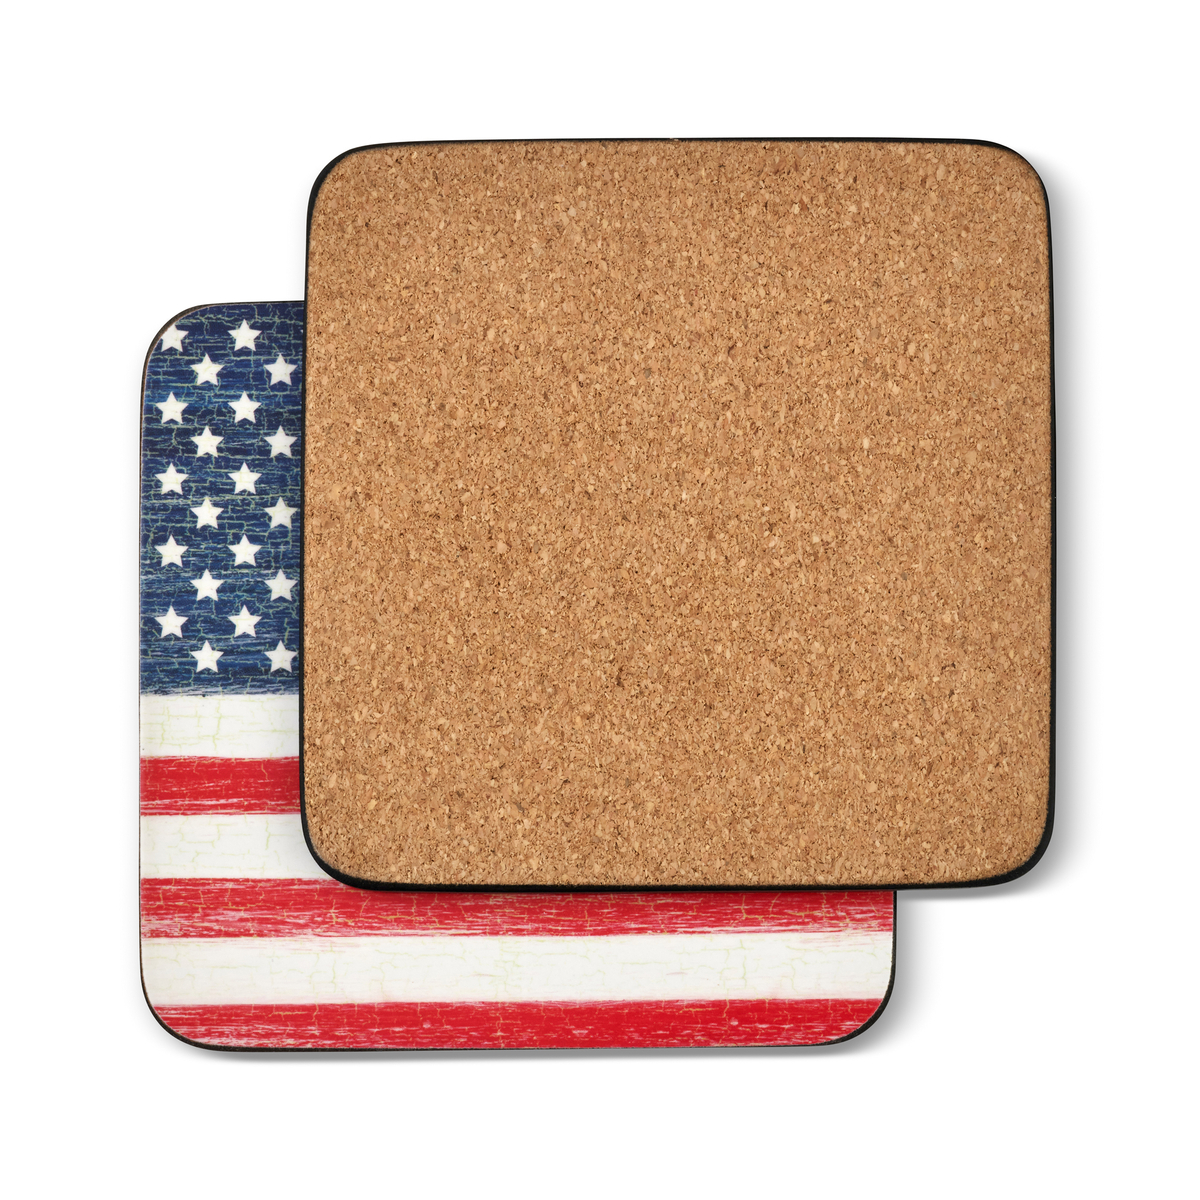 Pimpernel American Flag Coasters Set of 6 image number 1